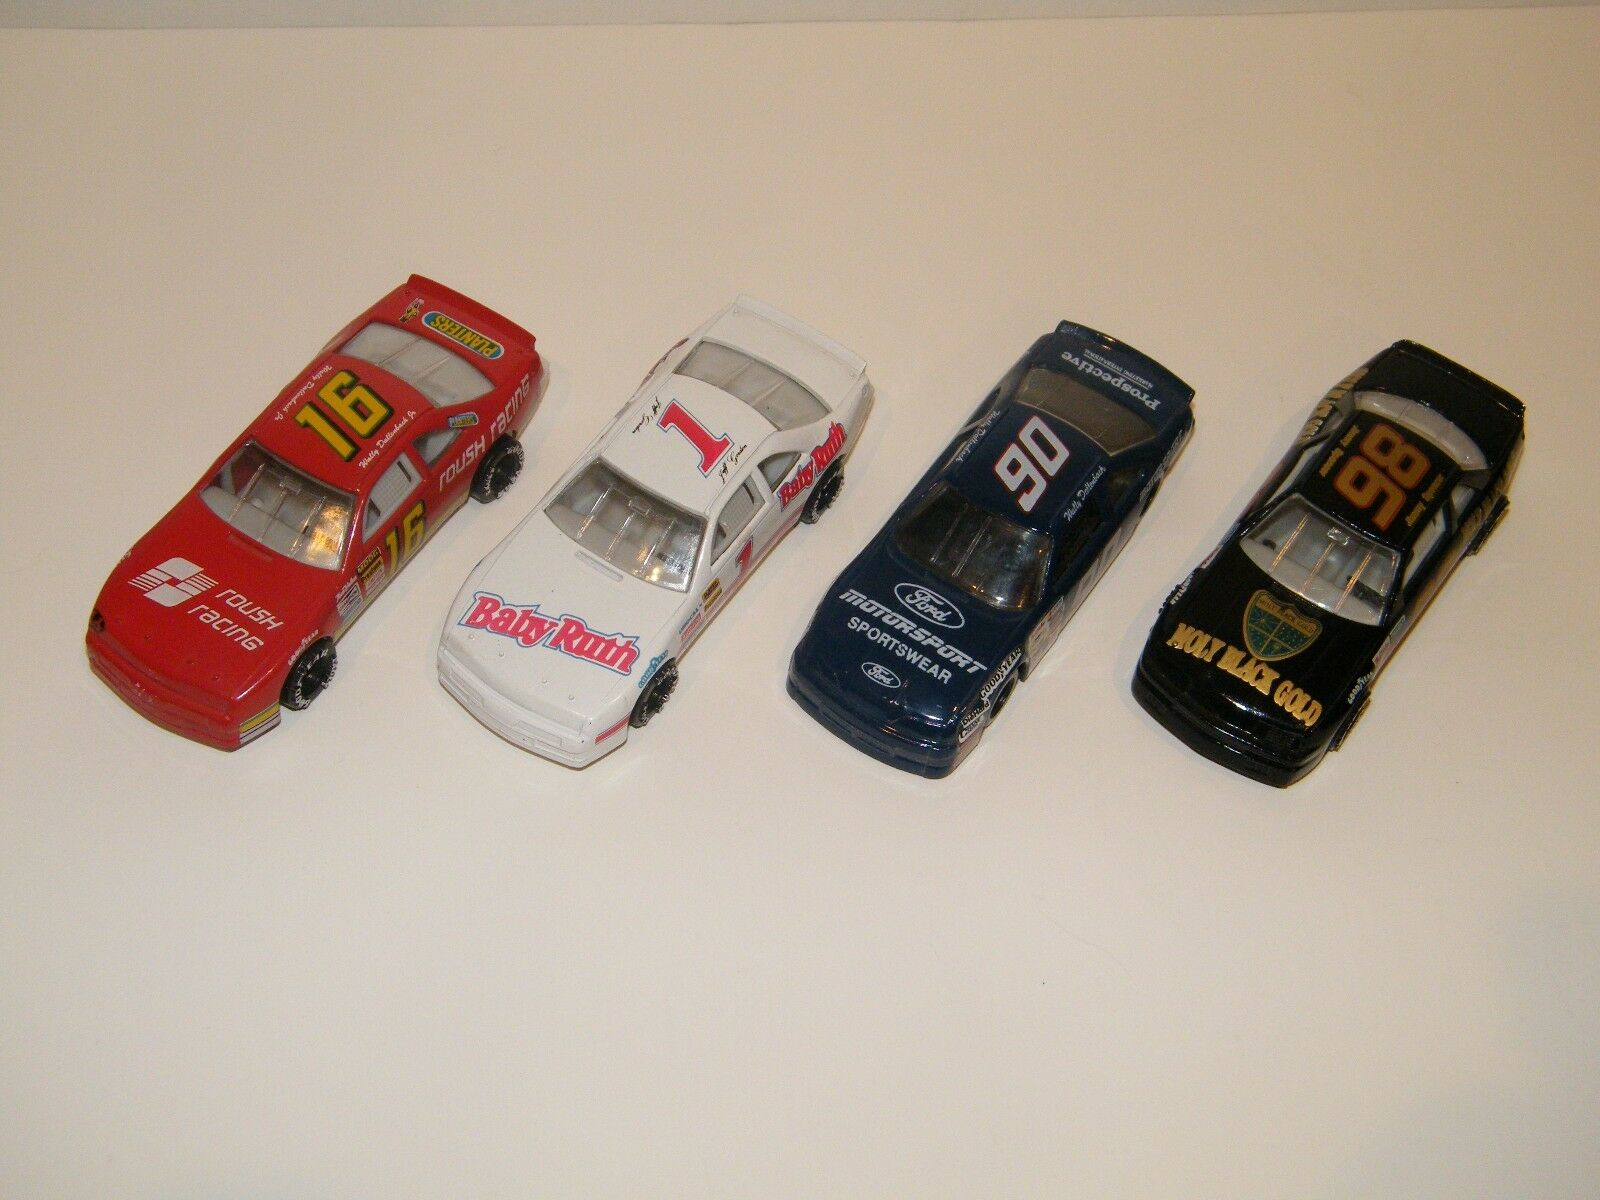 (4) NASCAR 4-1 2  RACE CARS  BABY RUTH, PLANTERS, MOLY MAX gold, MOTORSPORT